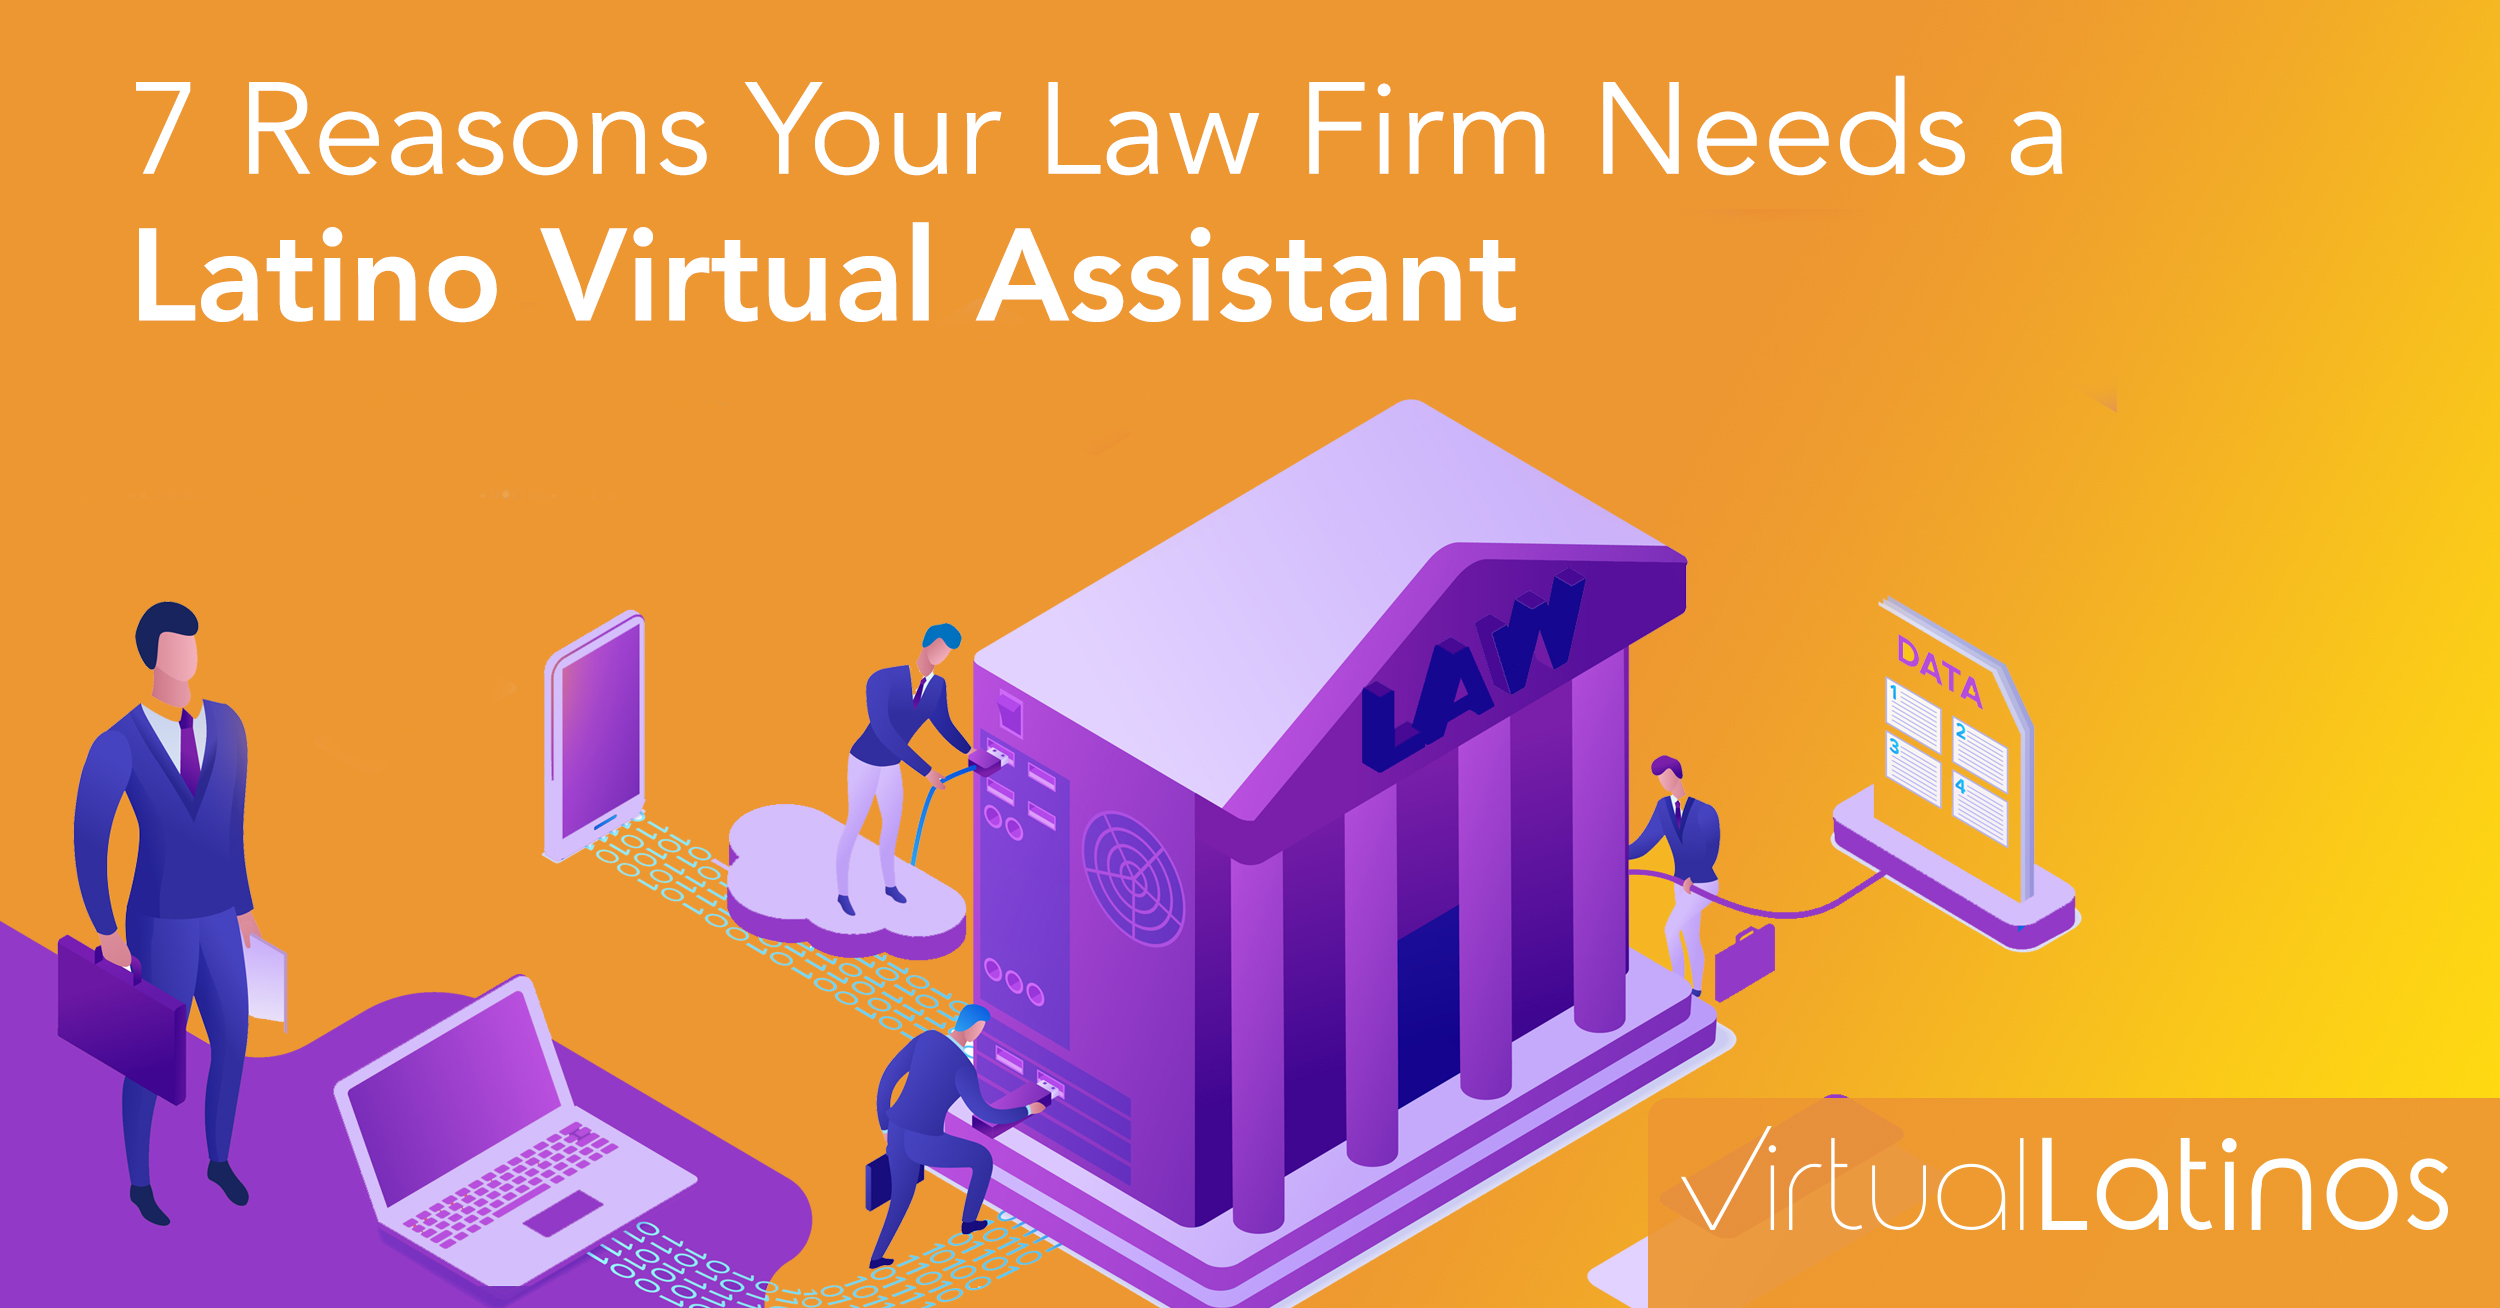 A virtual assistant for your law firm